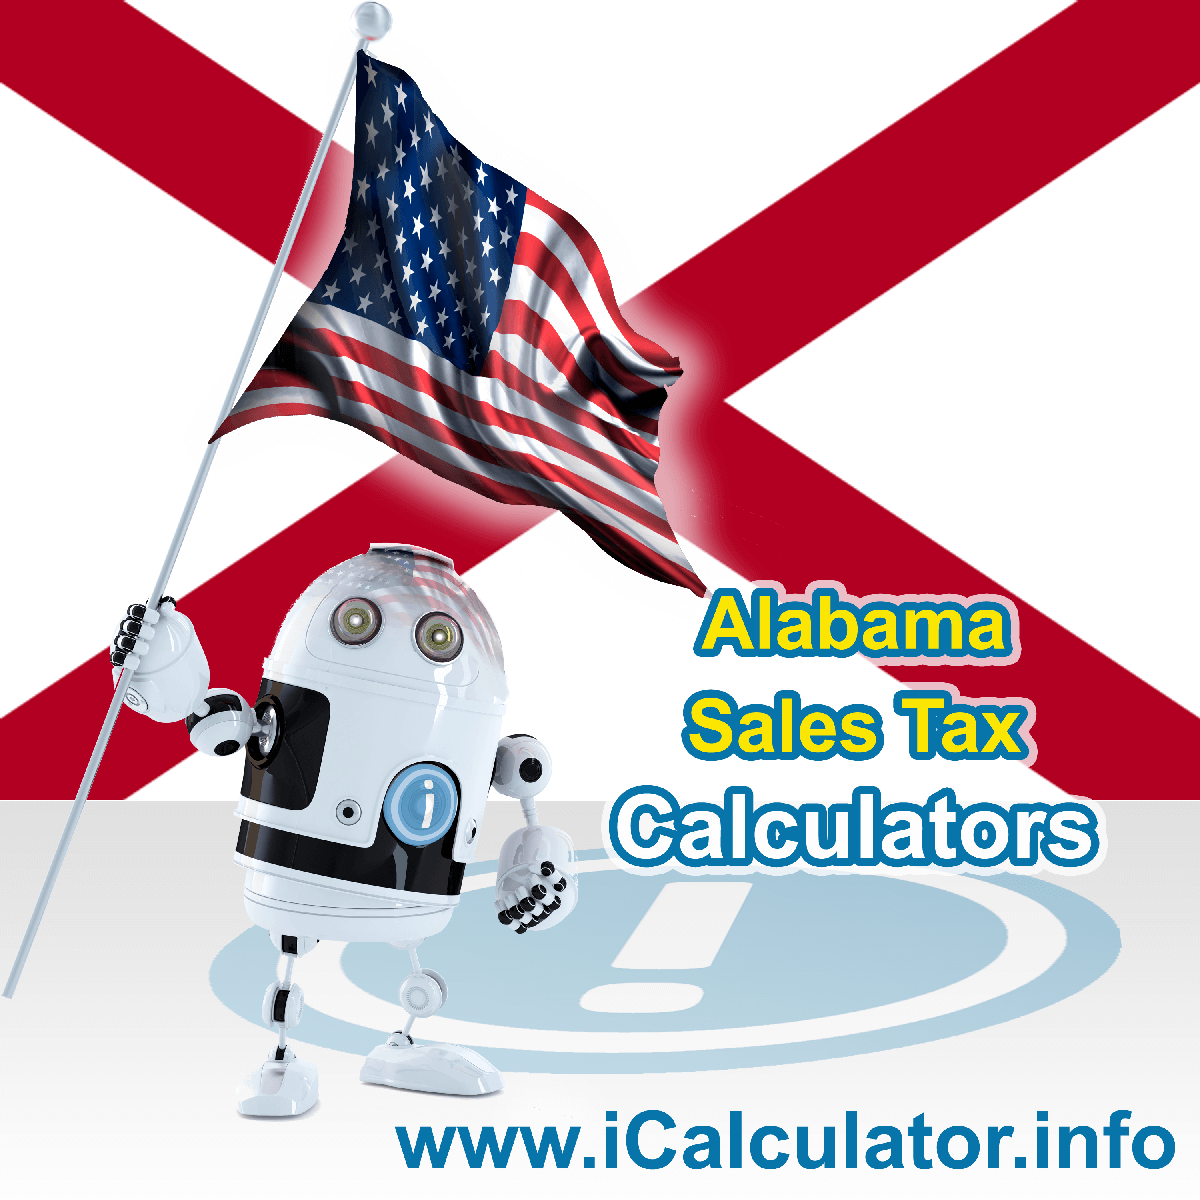 Piedmont Sales Rates: This image illustrates a calculator robot calculating Piedmont sales tax manually using the Piedmont Sales Tax Formula. You can use this information to calculate Piedmont Sales Tax manually or use the Piedmont Sales Tax Calculator to calculate sales tax online.